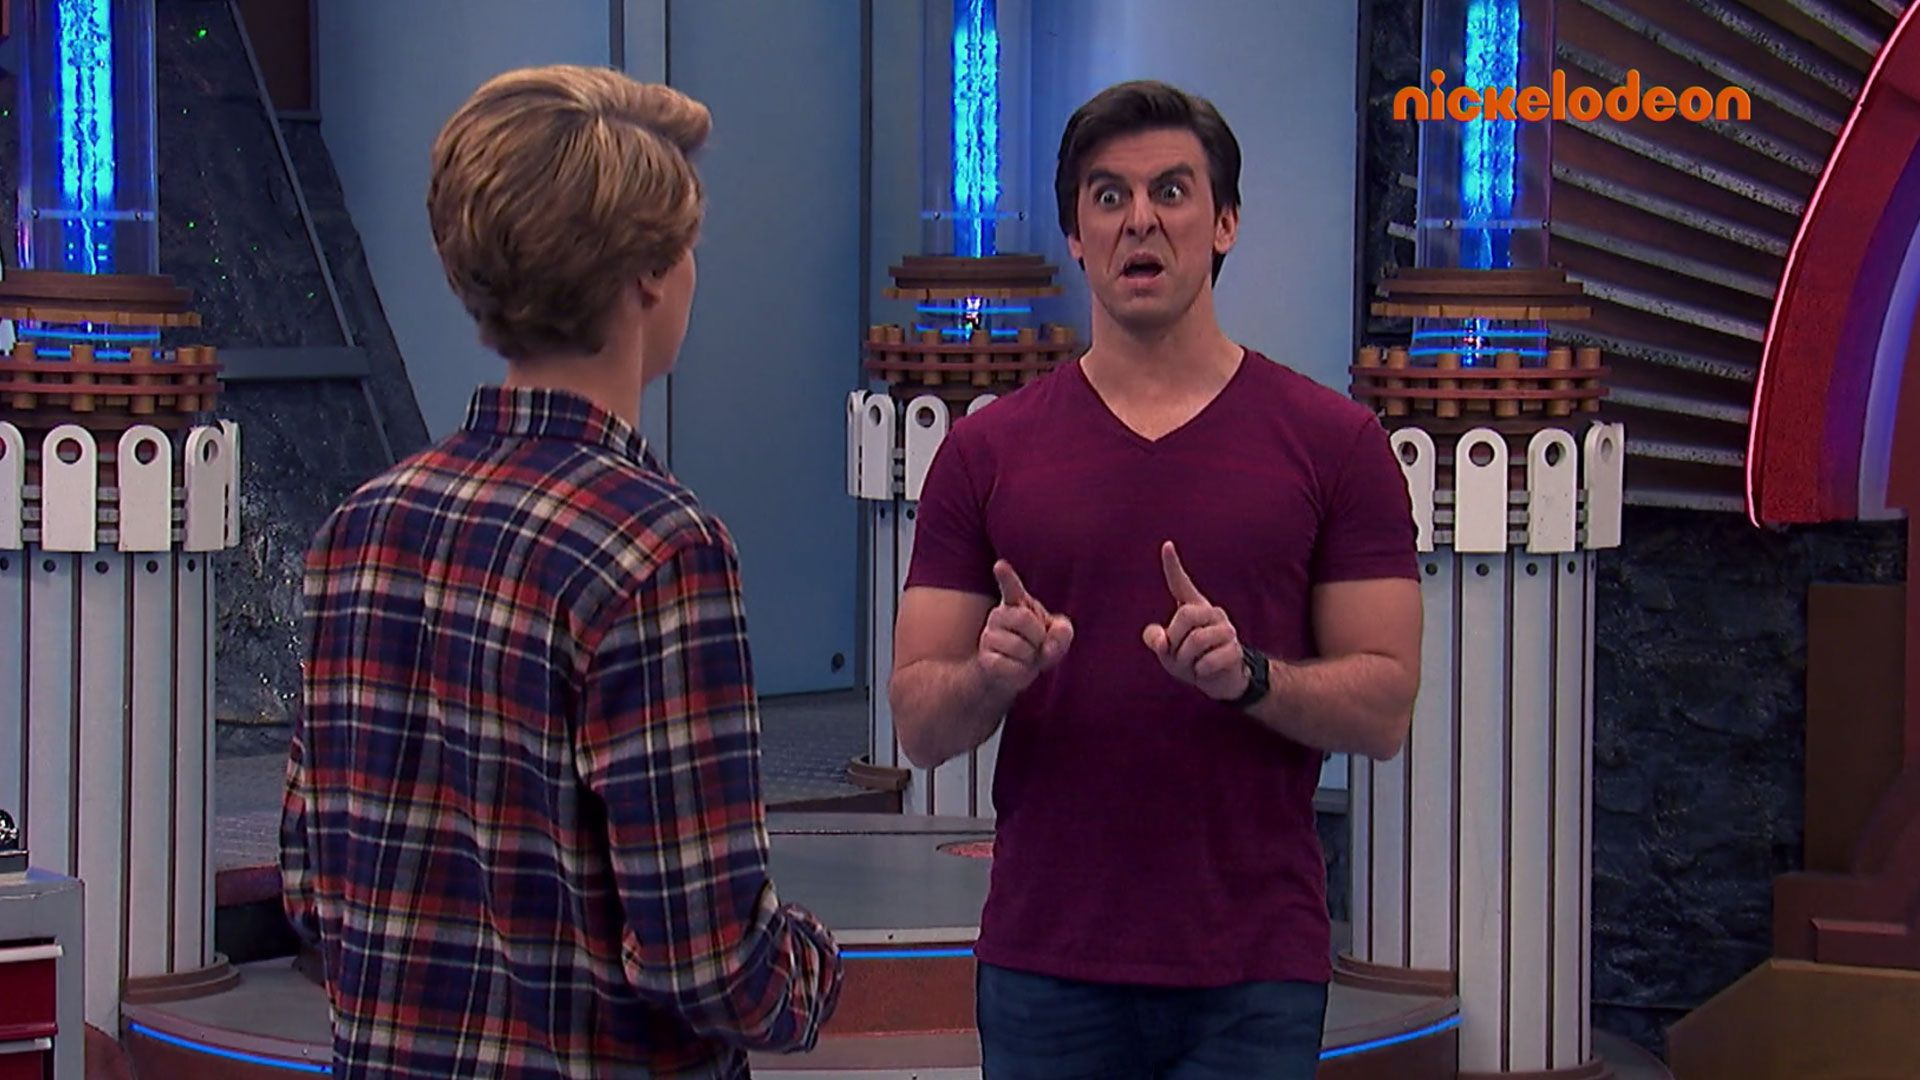 Coloriage A Imprimer Henry Danger.Brad L Invisible Nickelodeon